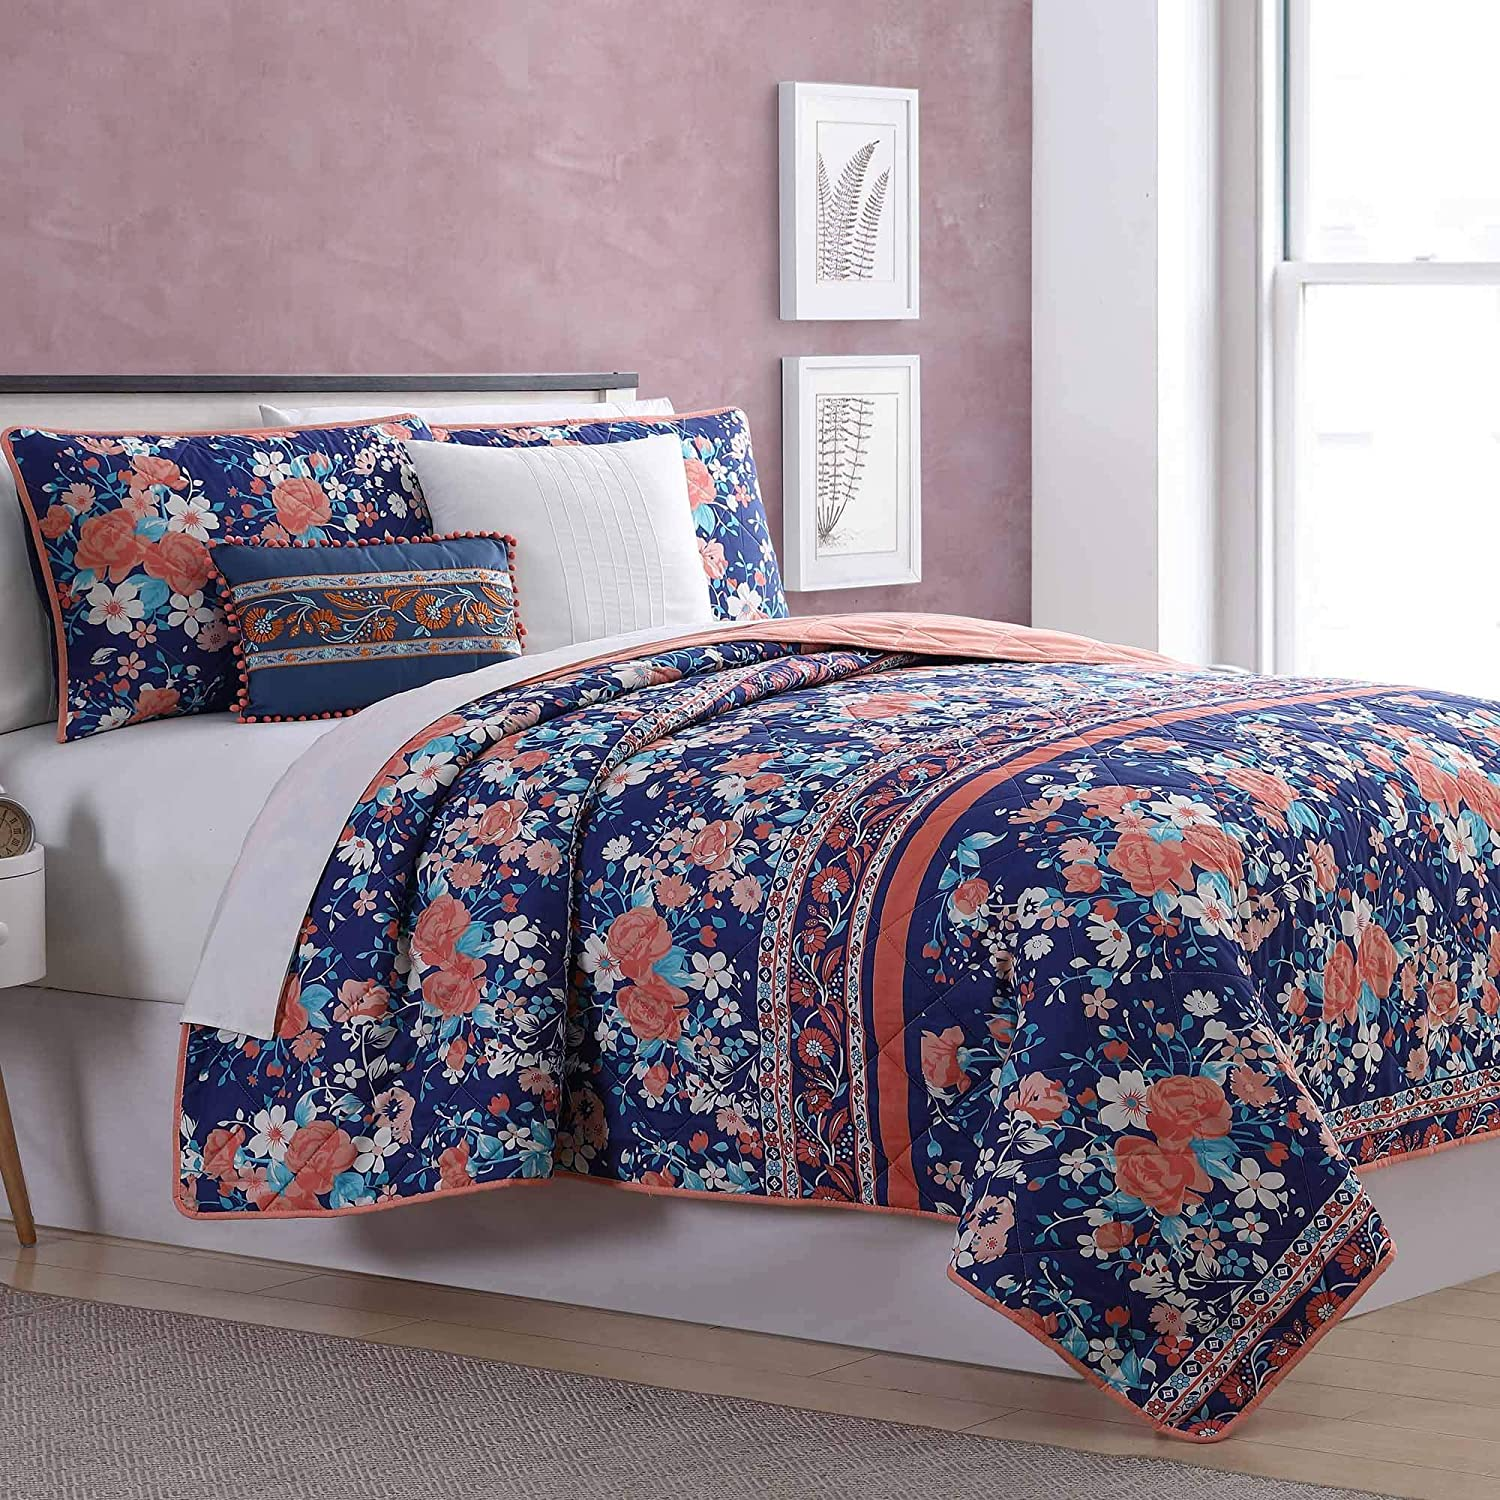 Amrapur Overseas Exbury Gardens 5-Piece Reversible Quilted Coverlet Set Twin Navy/Coral